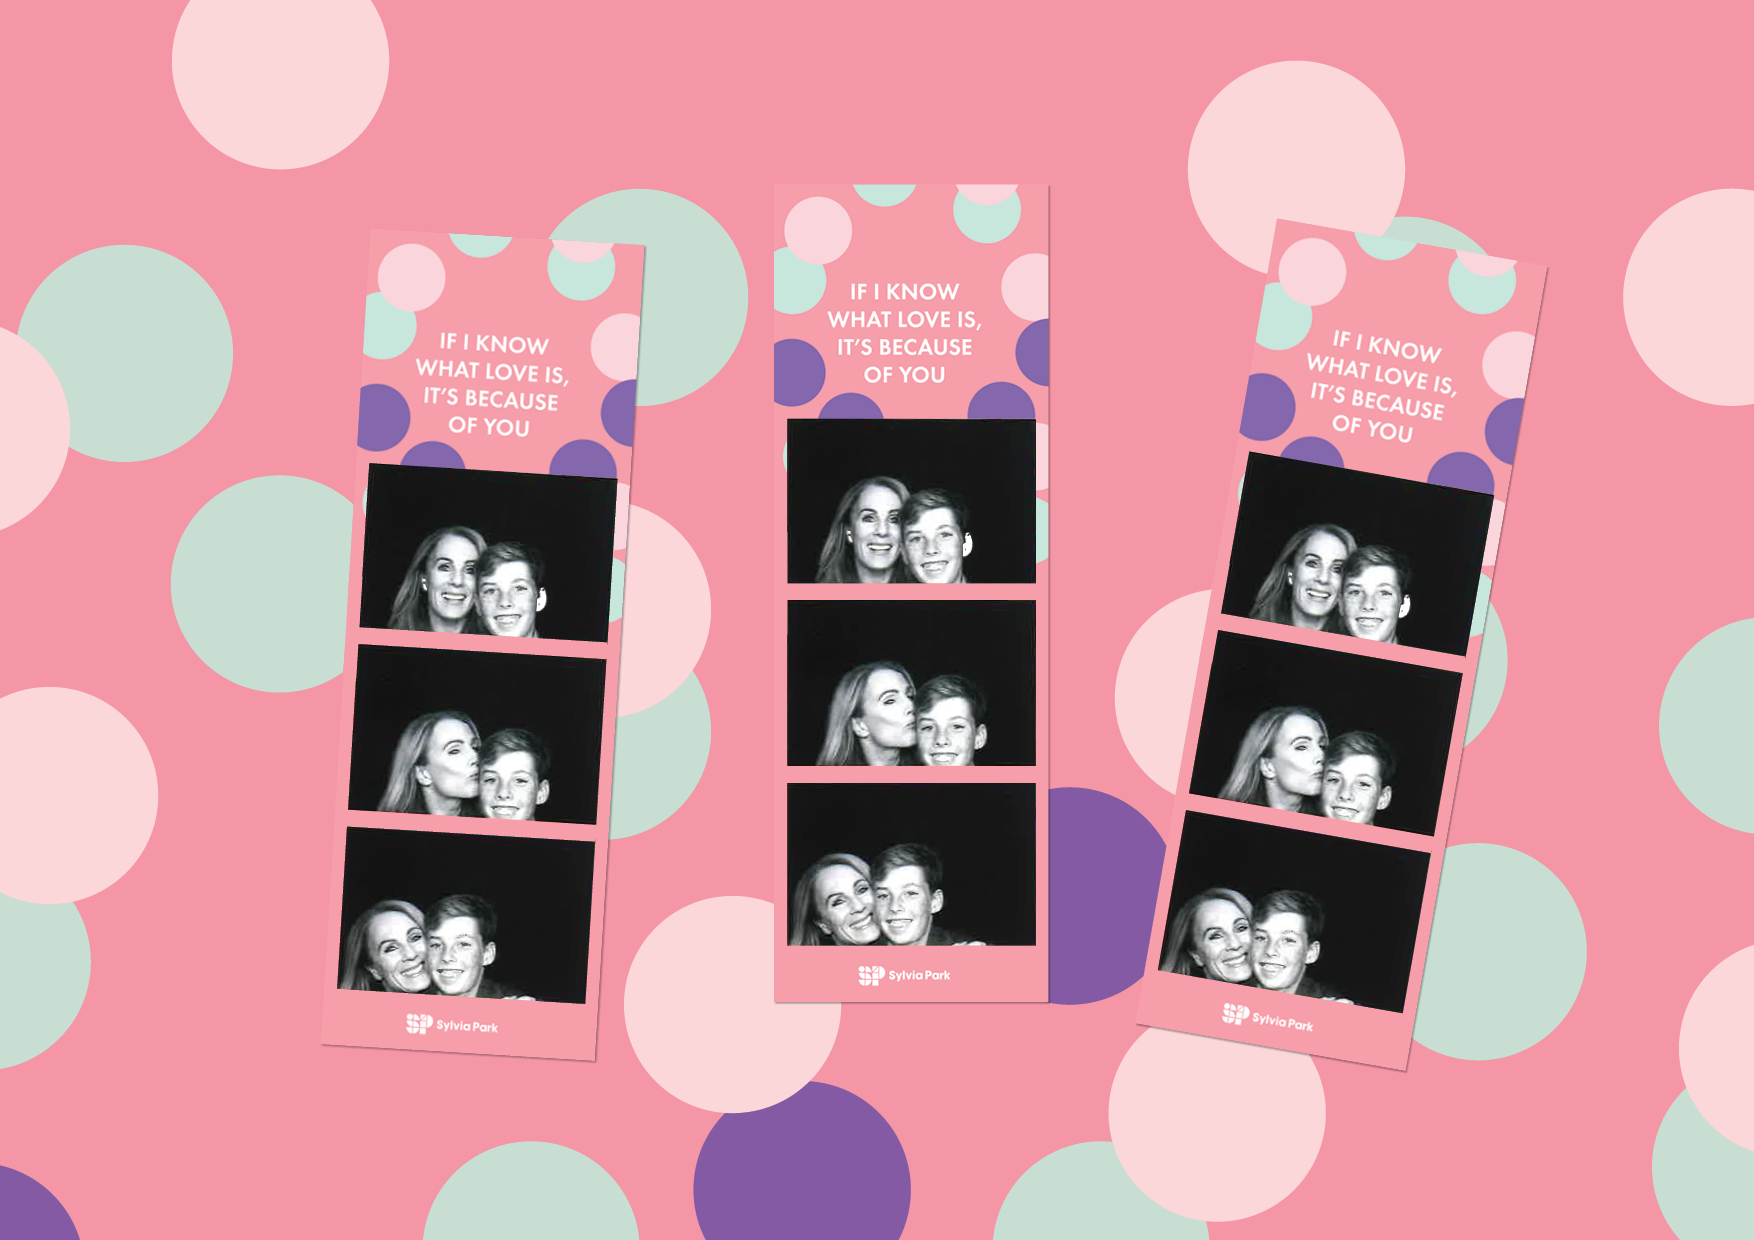 3 cute photo strips showing themed branding and mother and son photos for Sylvia Park Mother's day retail activation